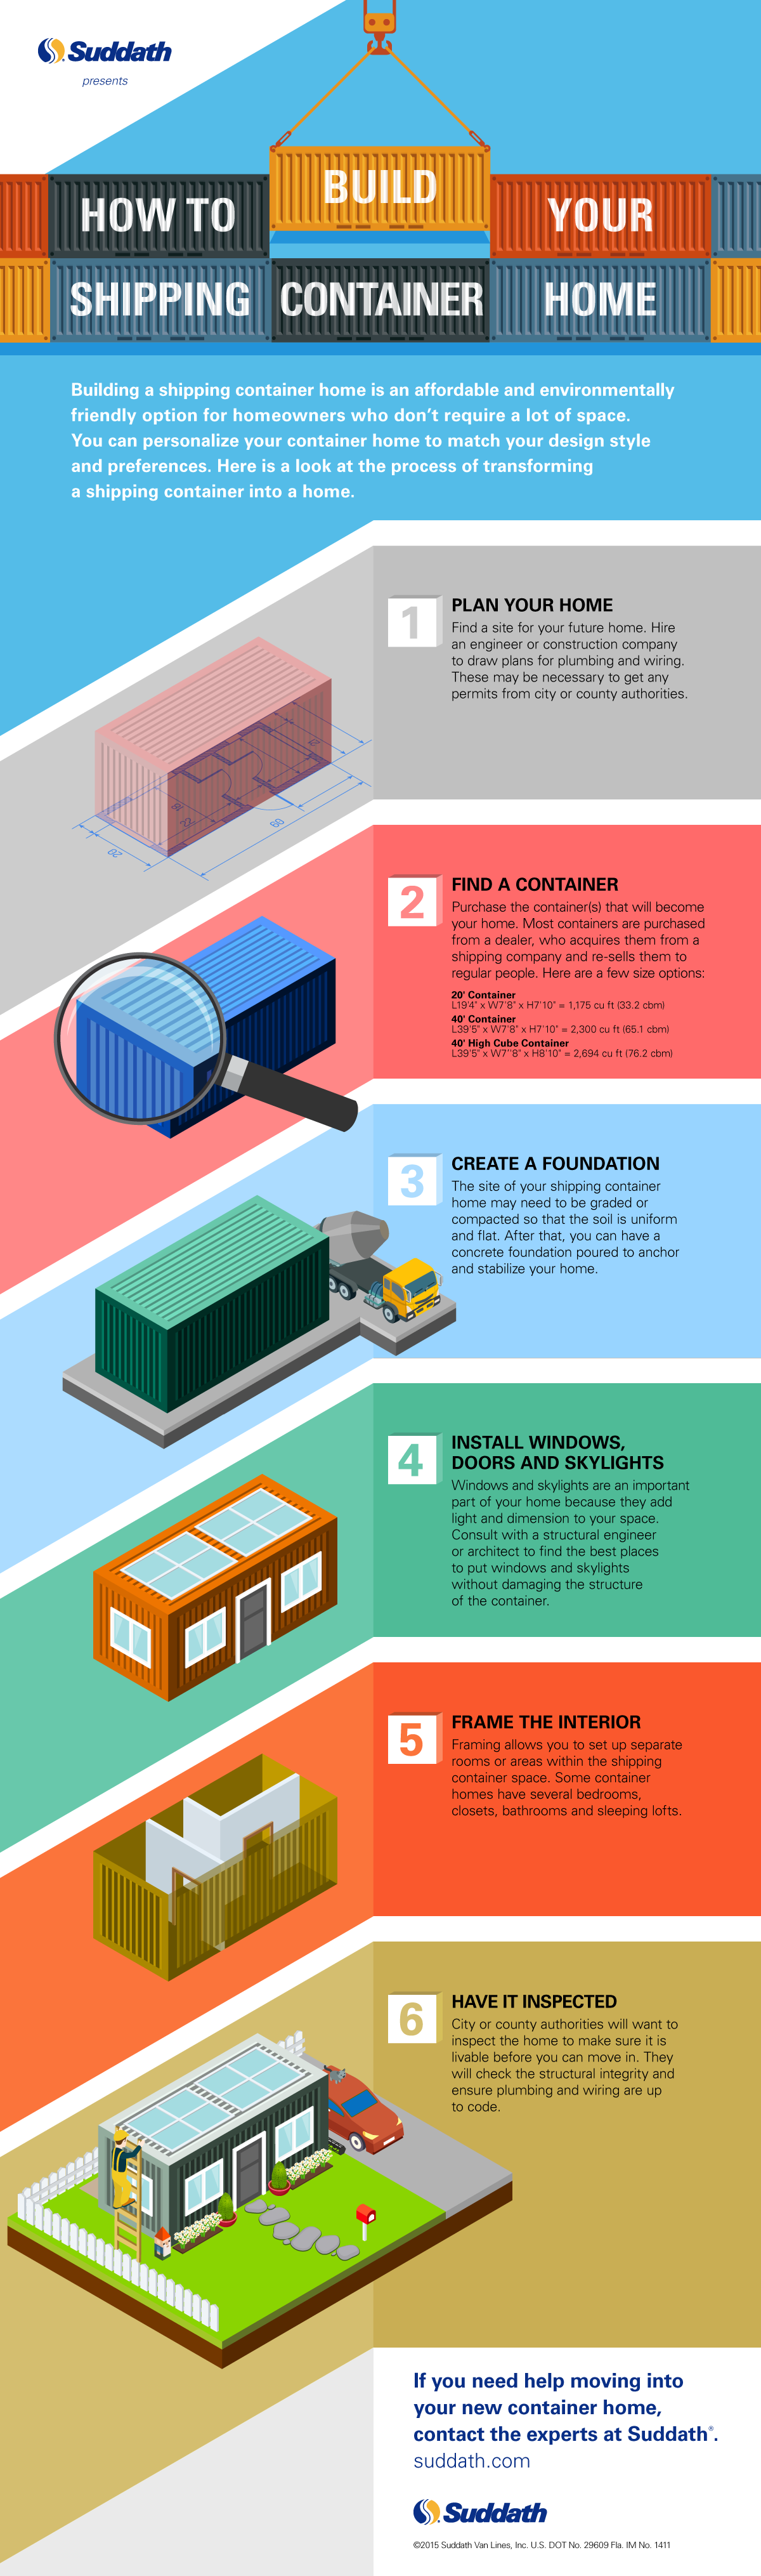 How to build your shipping container home infographic for Maison container 50000